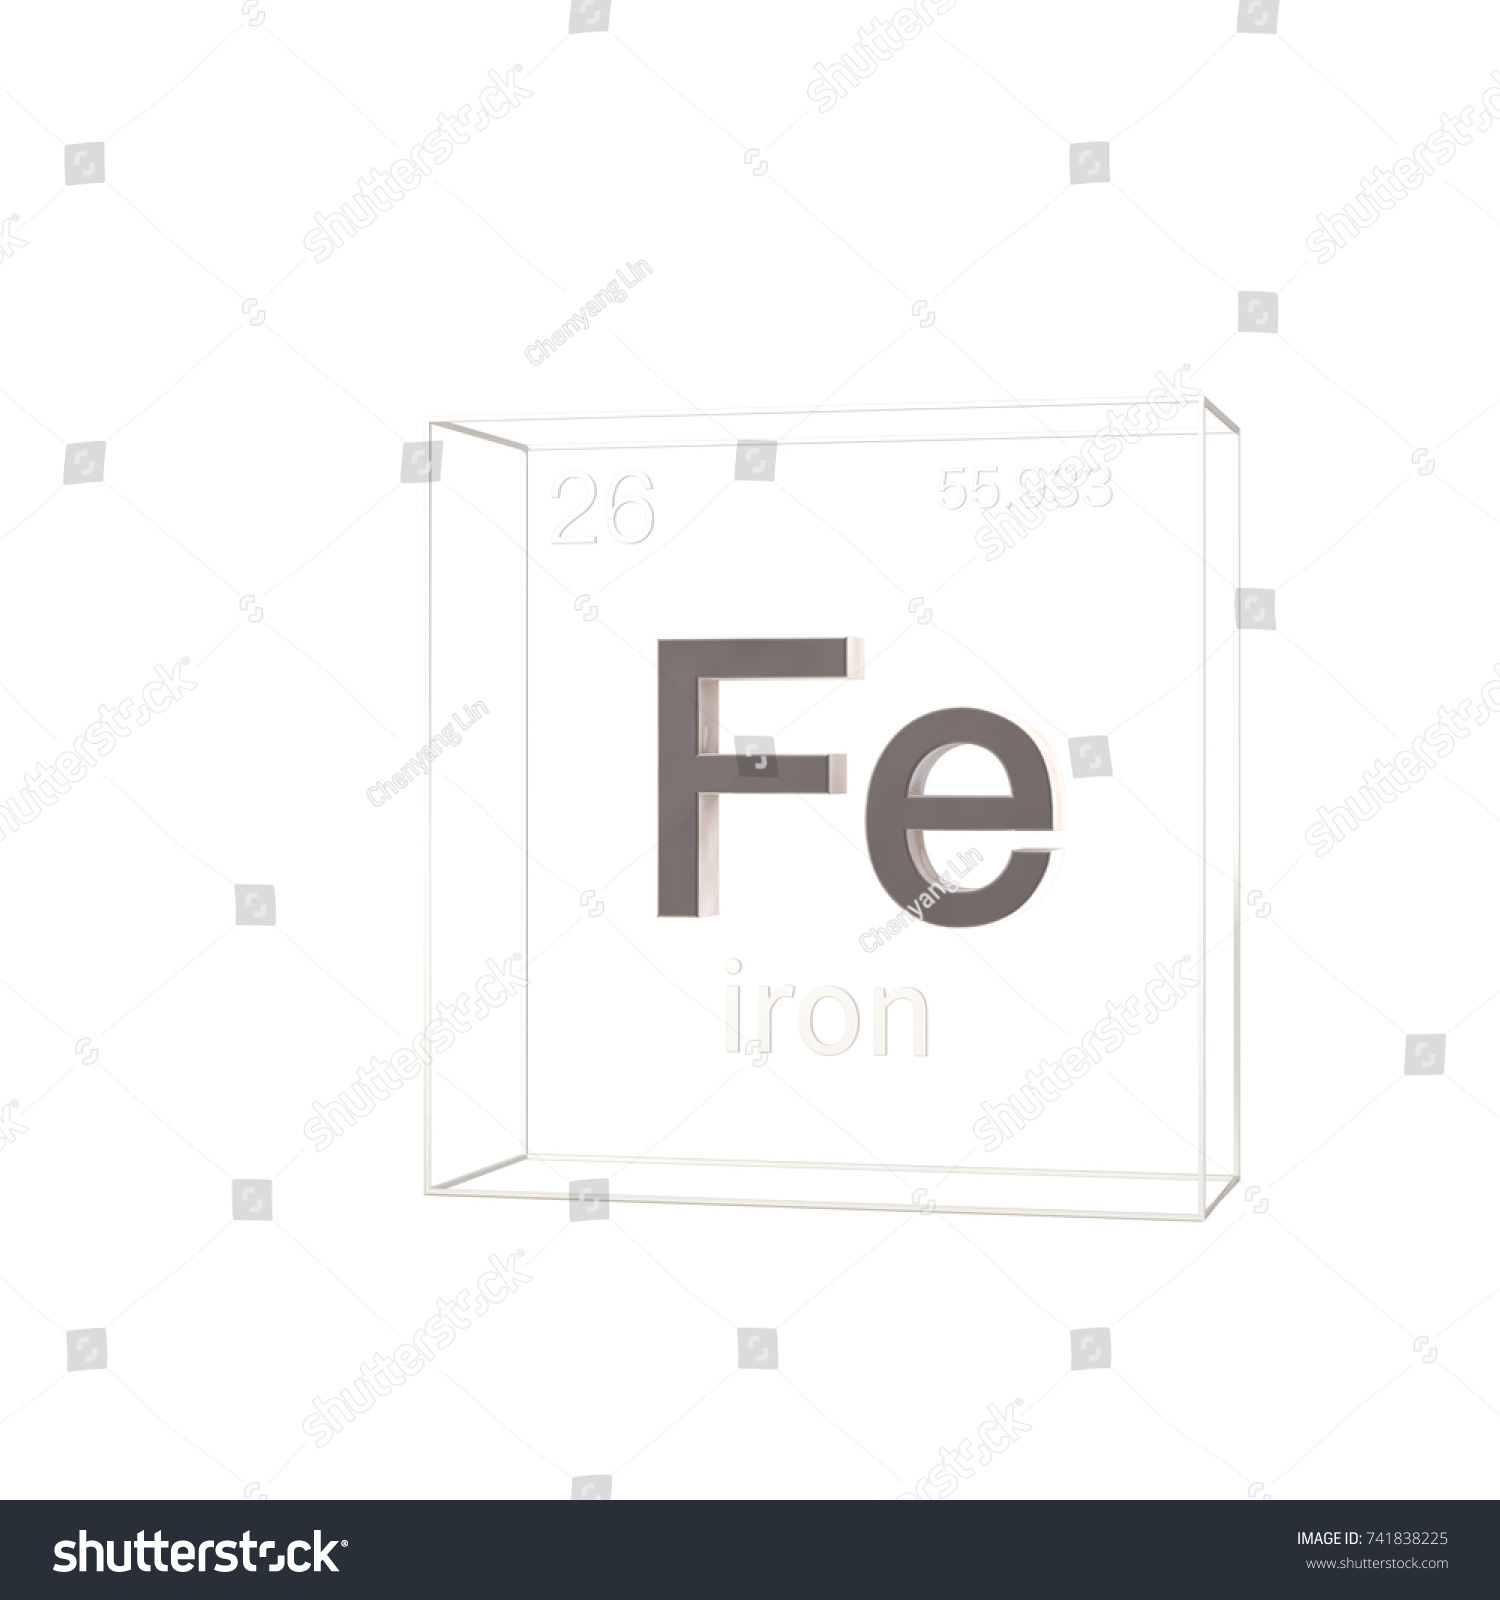 Hydrogen chemical element with atomic omnigraffle cisco stencils periodic table symbol for iron images periodic table images stock photo iron chemical element atomic number gamestrikefo Choice Image